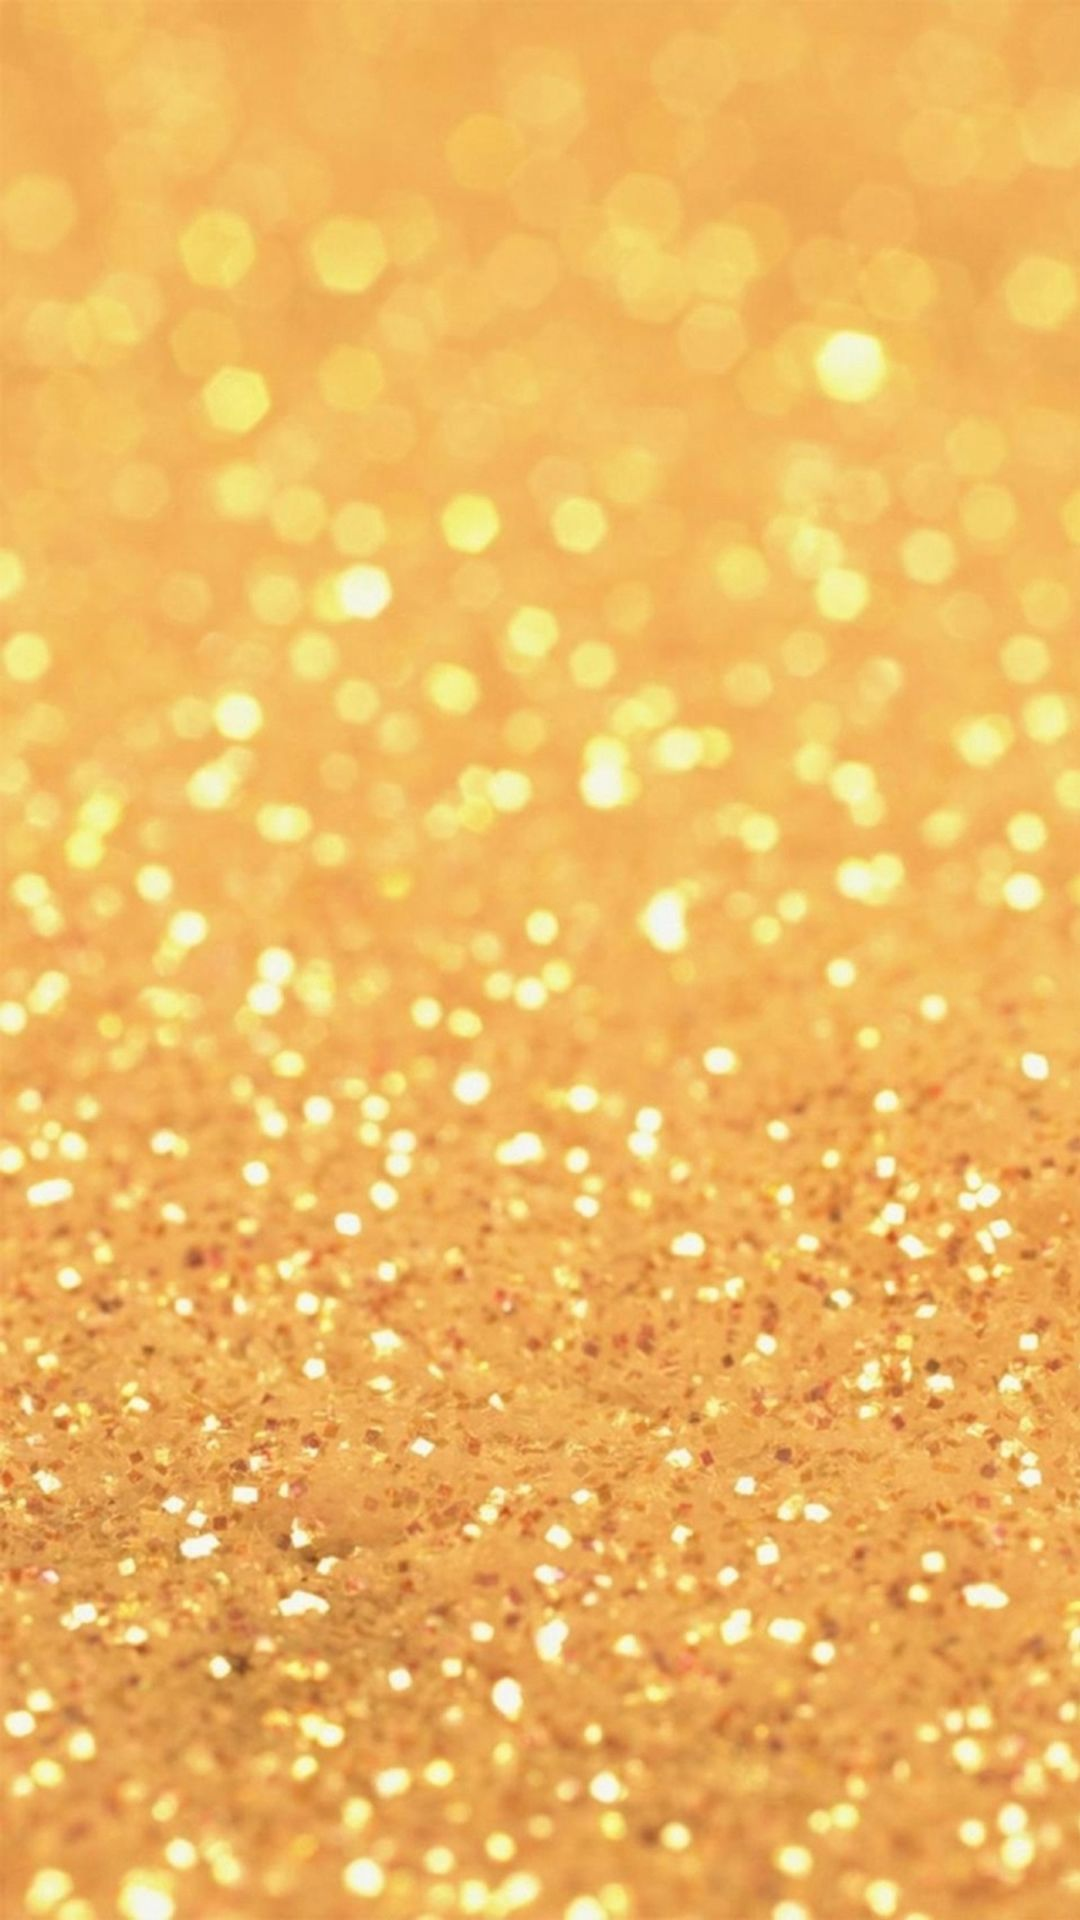 Gold Iphone 6 Plus Wallpapers Top Free Gold Iphone 6 Plus